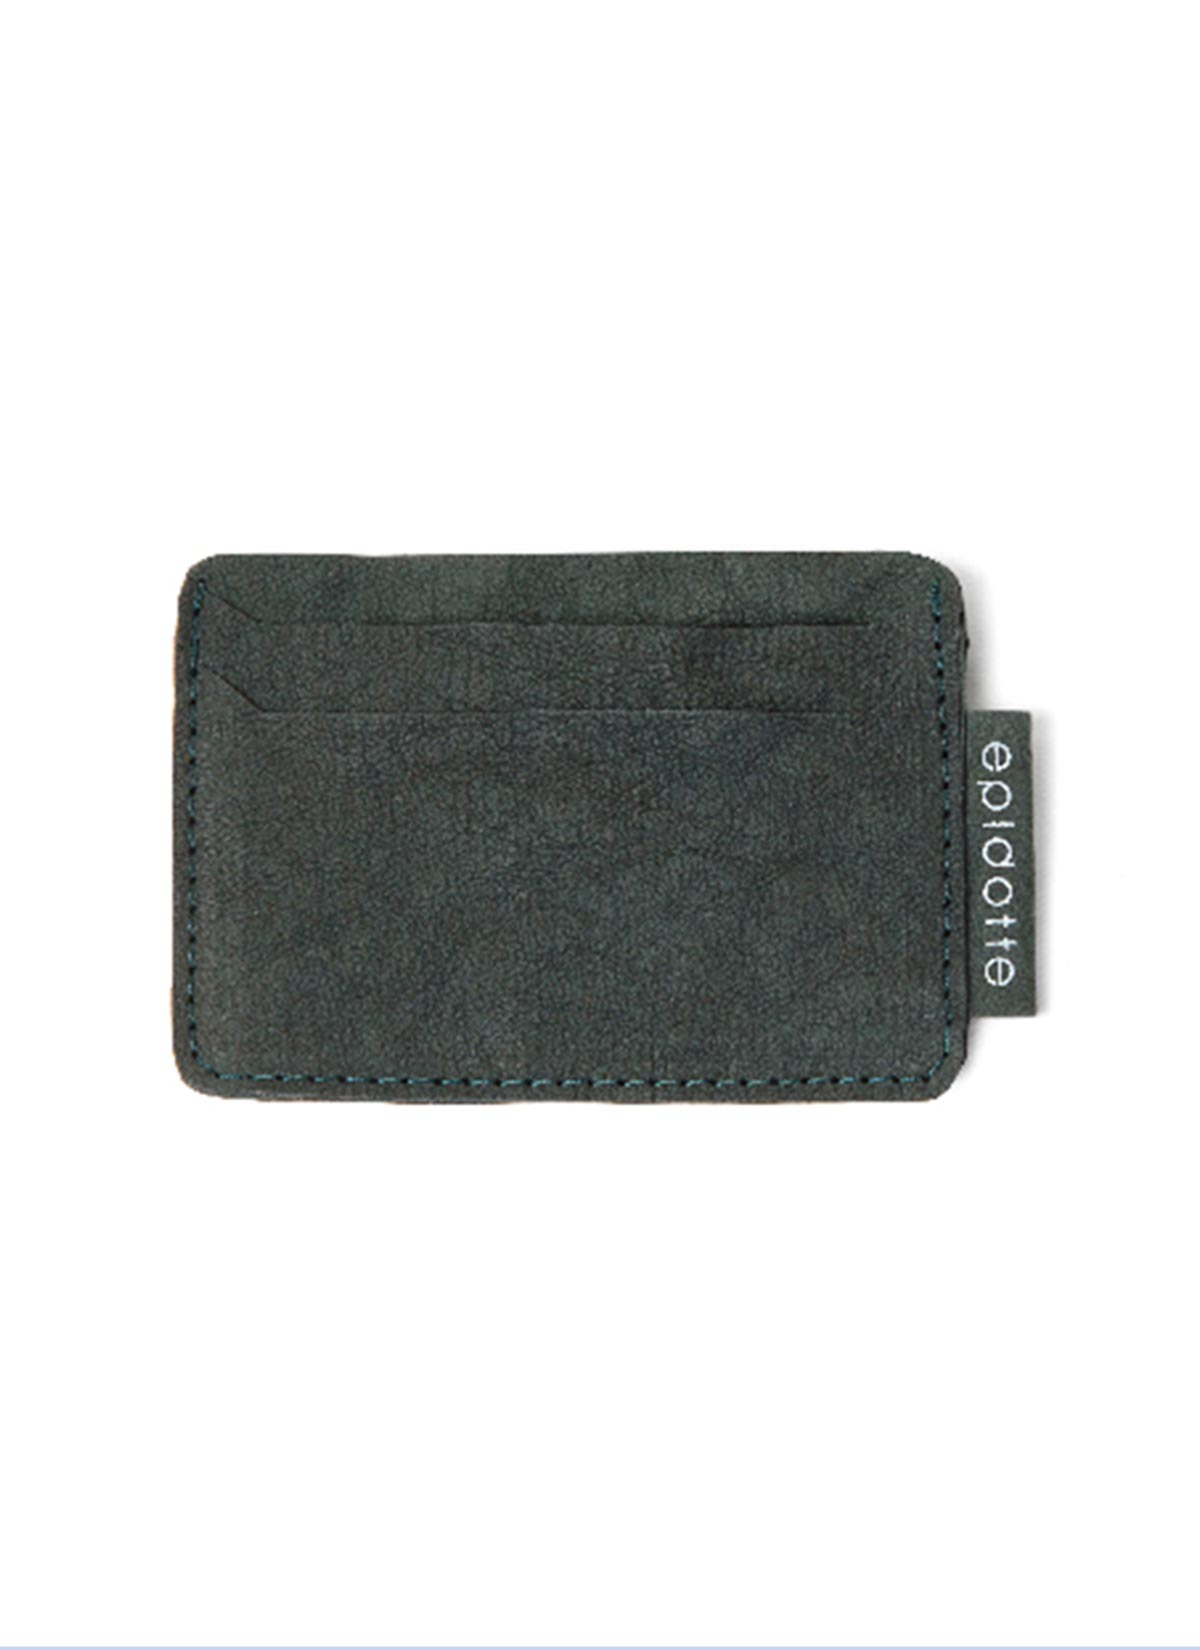 Card Holder Mountainview